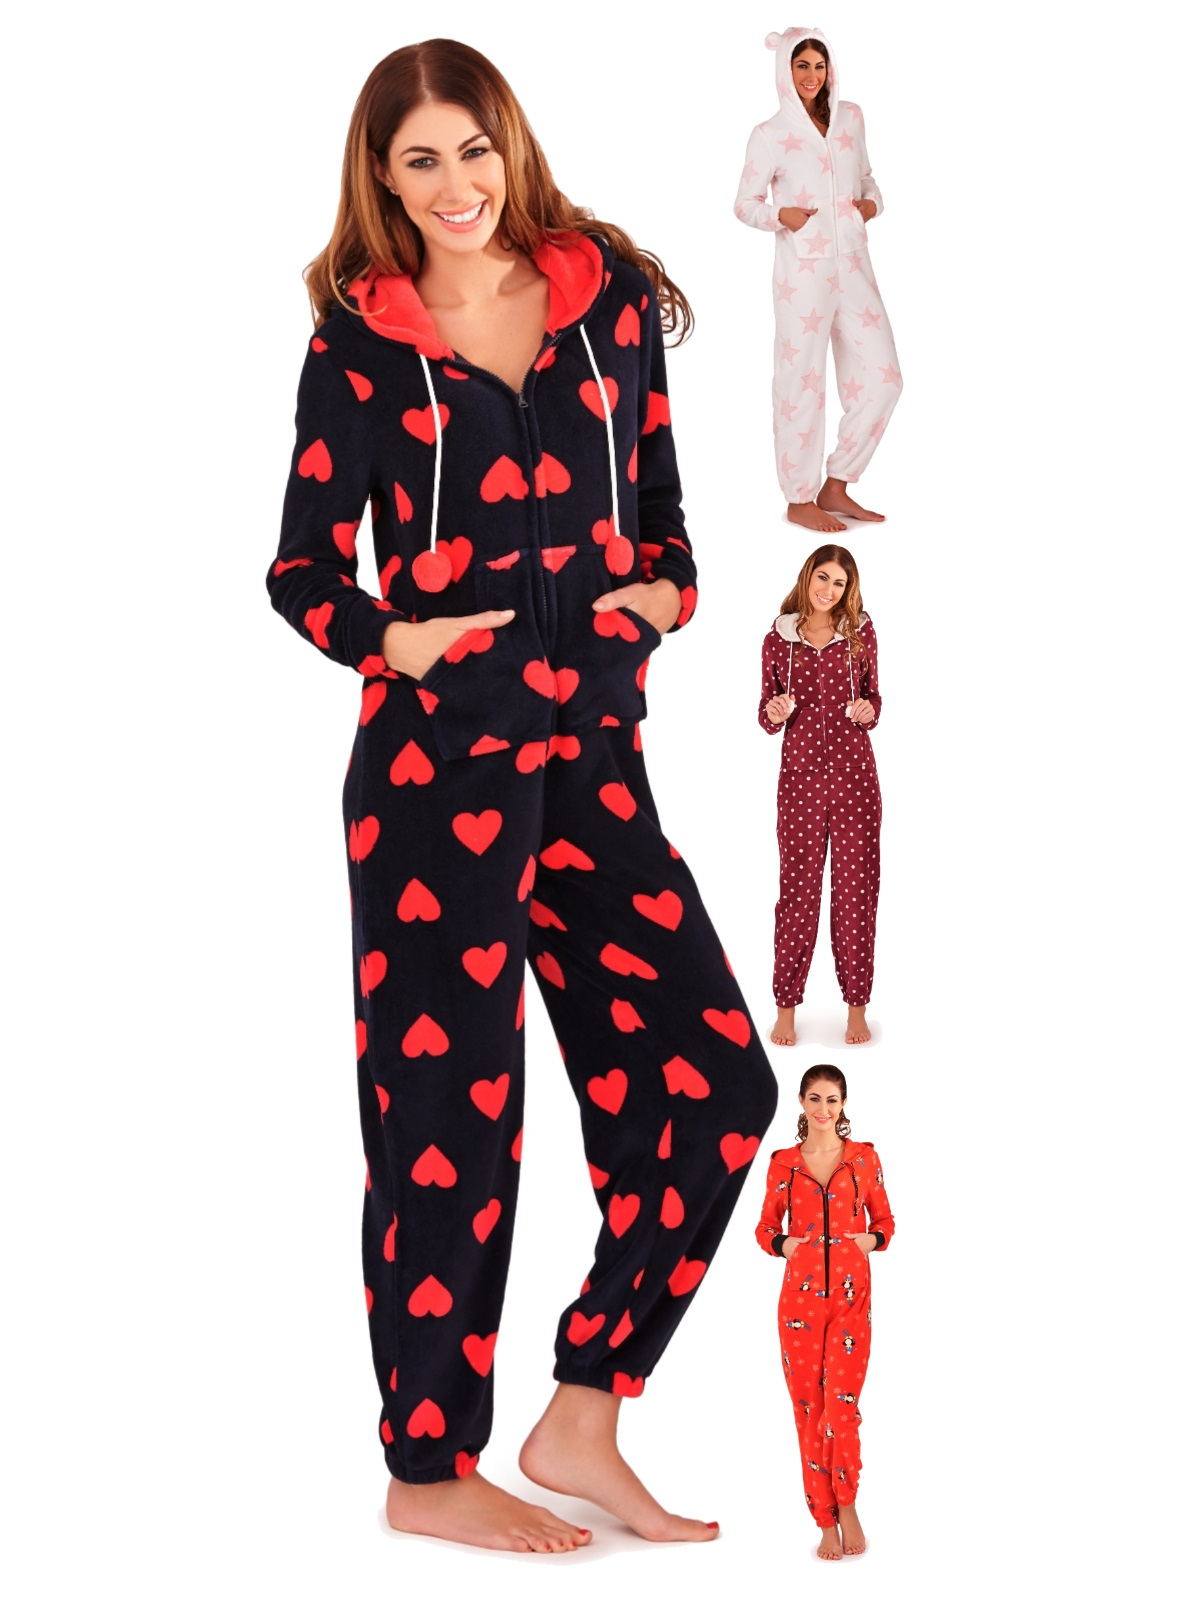 Adult onesie Pajamas as low as $ + FAST Shipping. Buy From The Original Creator of The Adult onesie Footed Pajamas Brand, Adult Onesie™ We Supply The World With Footy Hoodies, Footed Pajamas For Adults & Adult onesie.